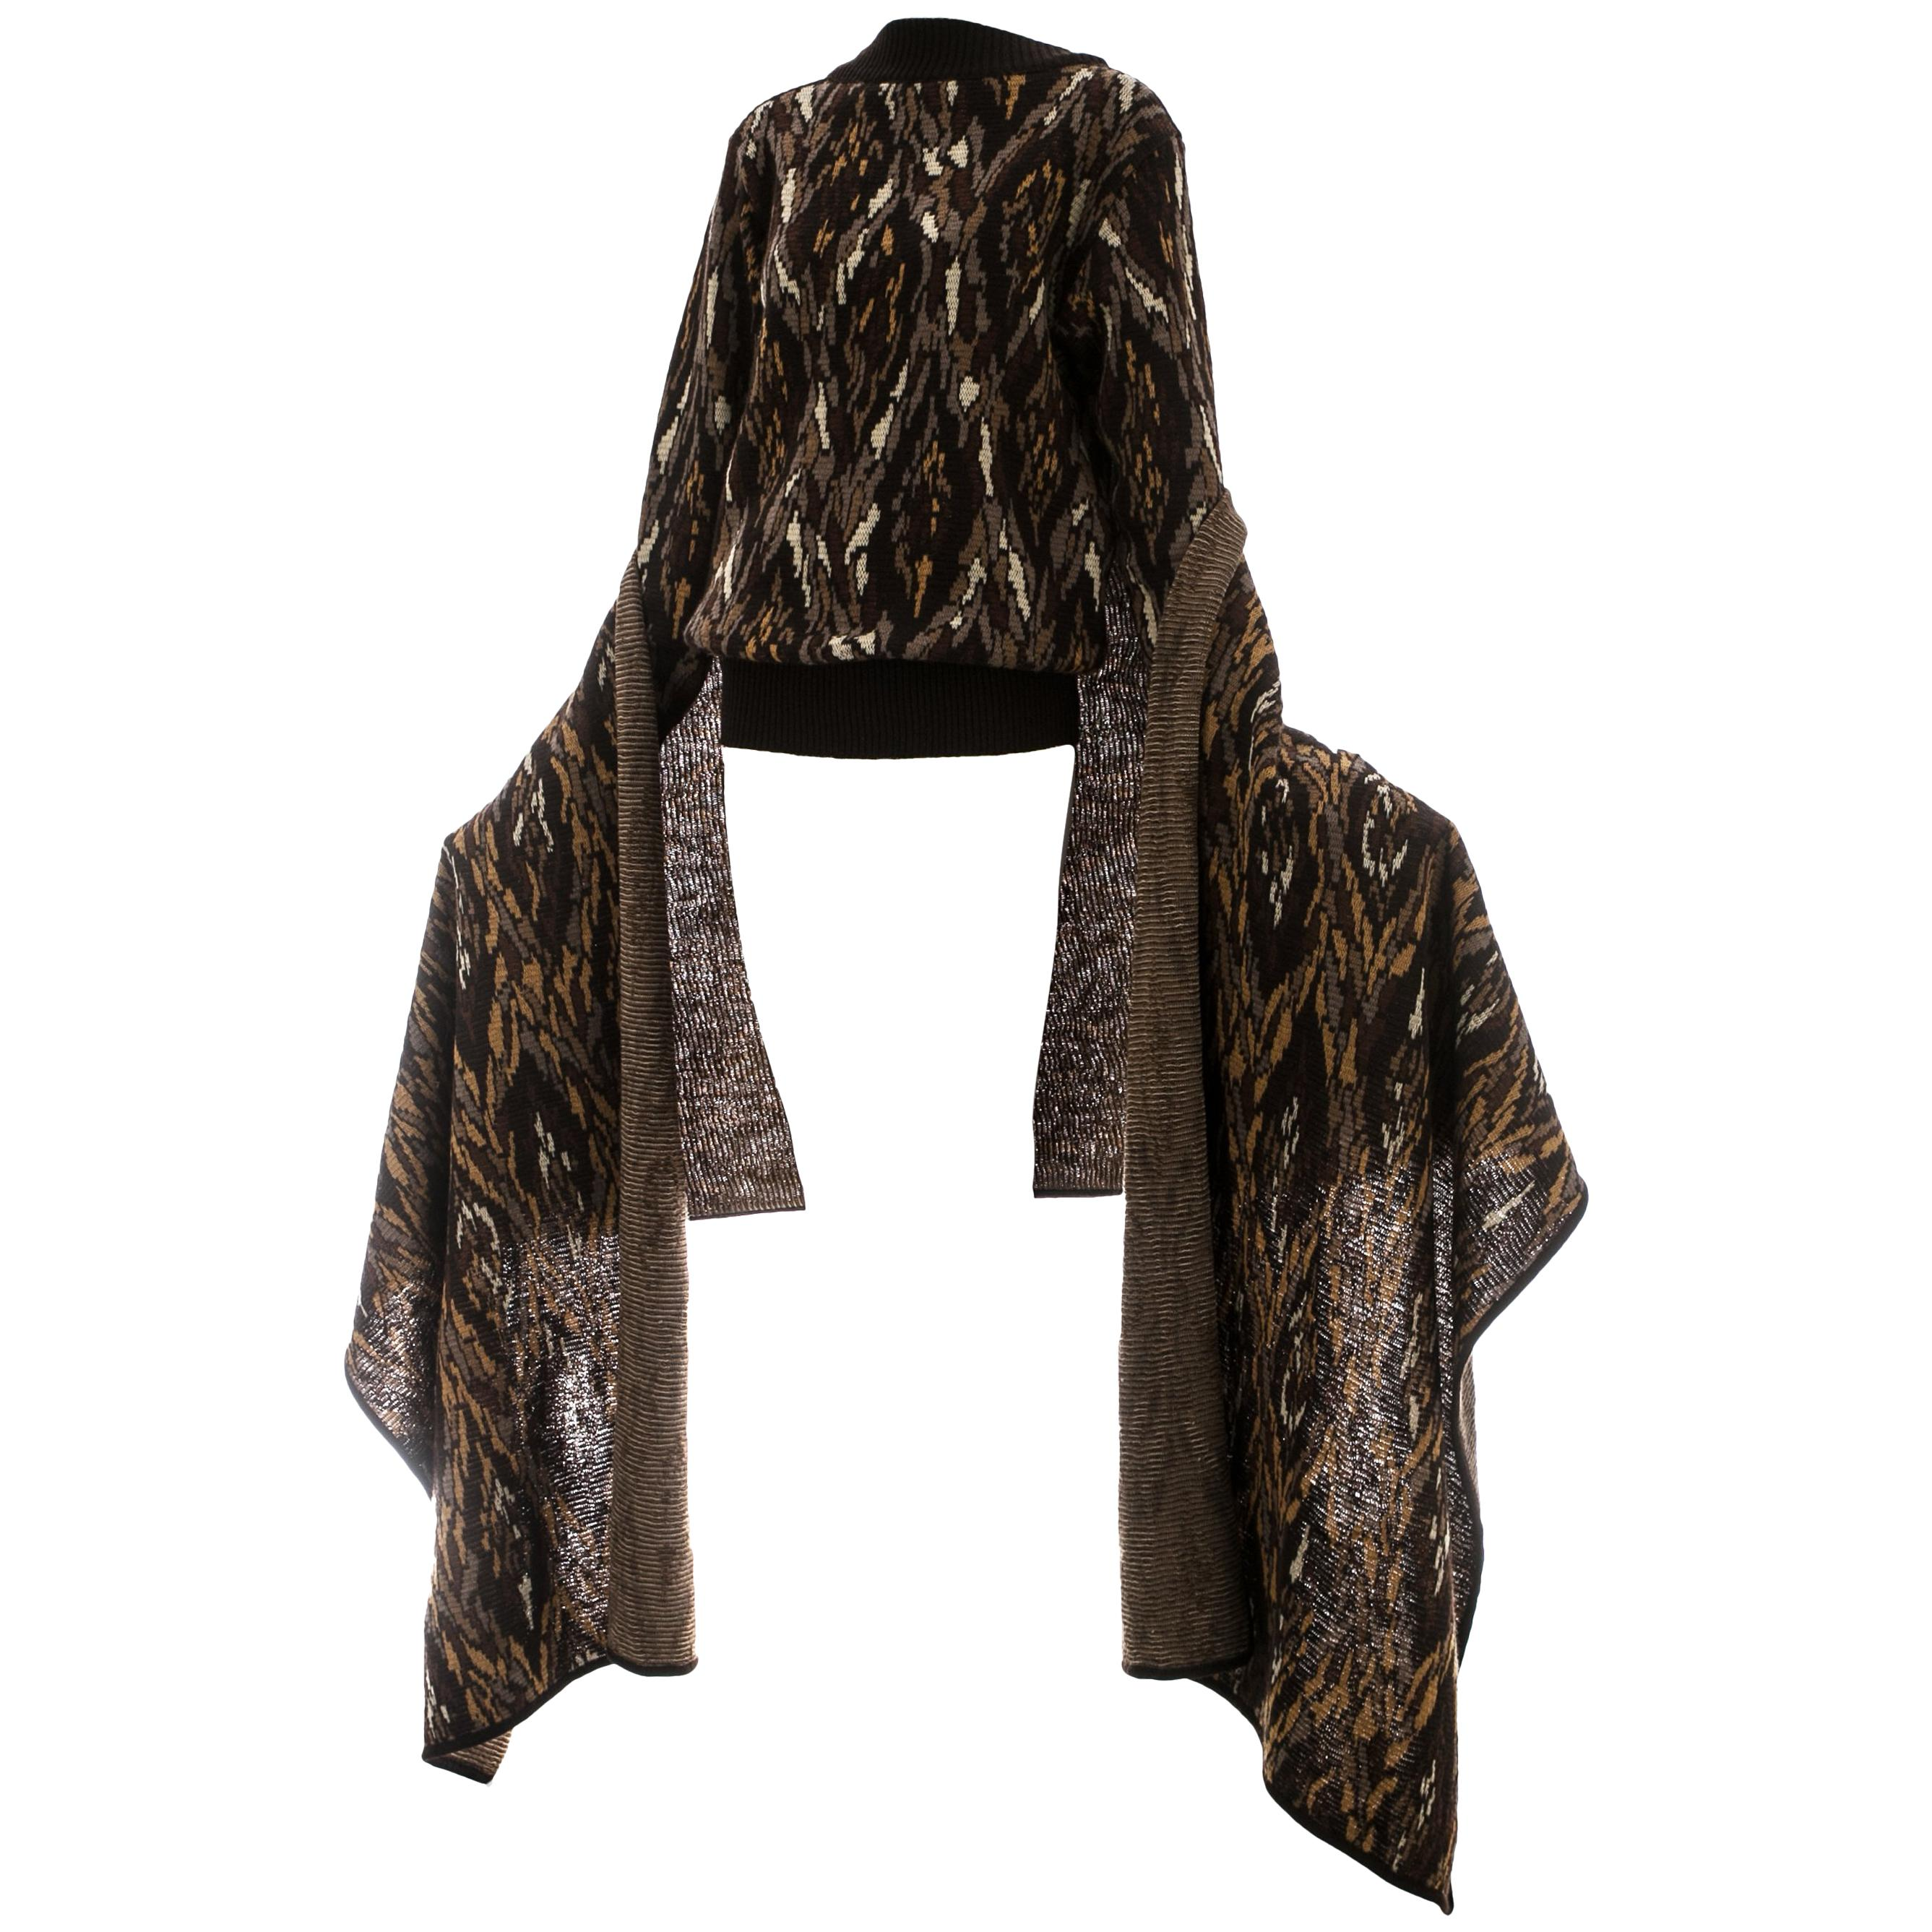 Yves Saint Laurent brown wool sweater with matching large scarf, c. 1980s